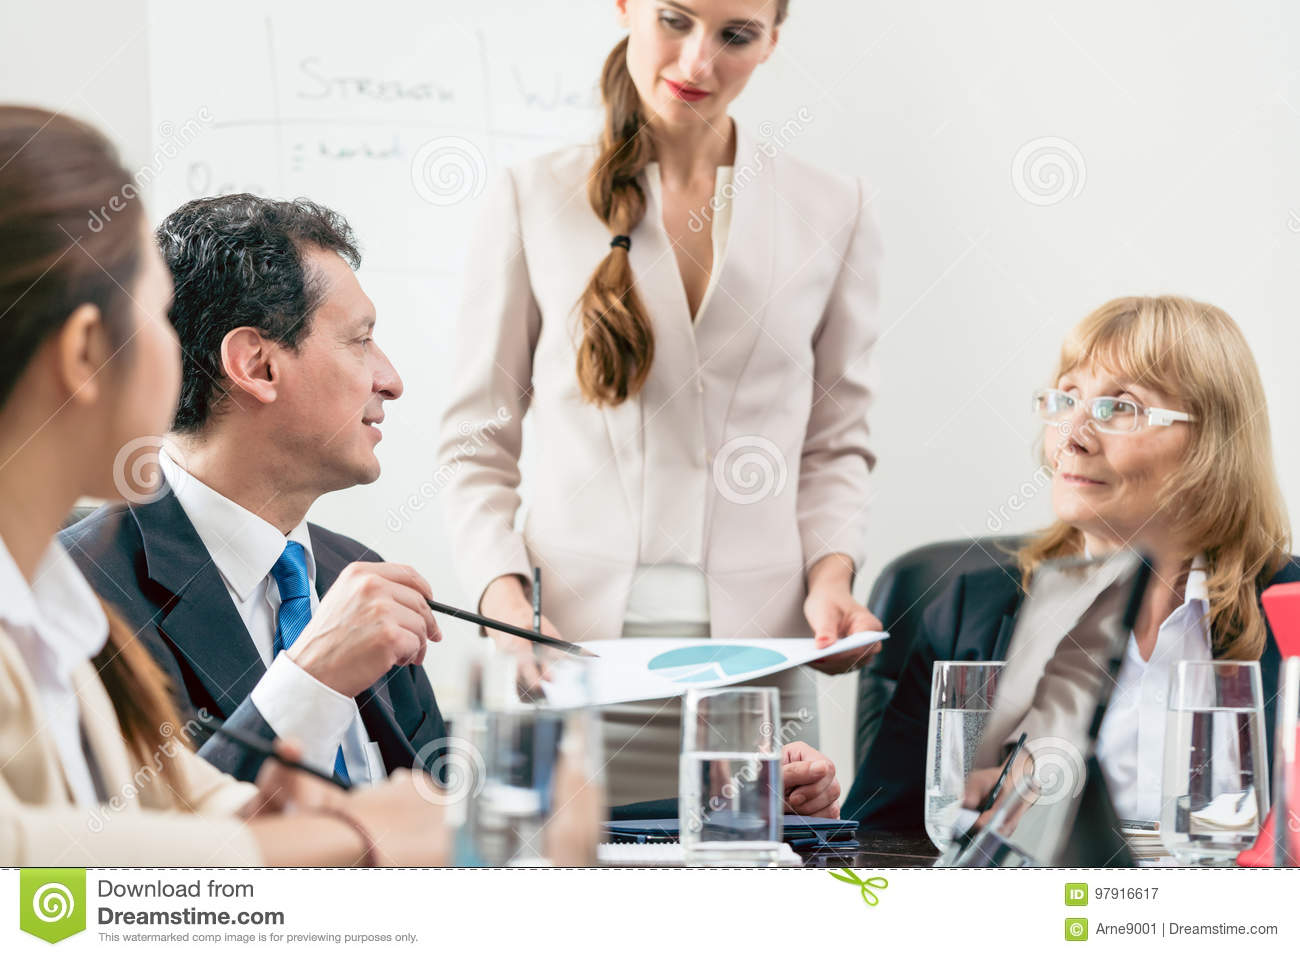 Dedicated Manager Sharing His Opinion While Interpreting A